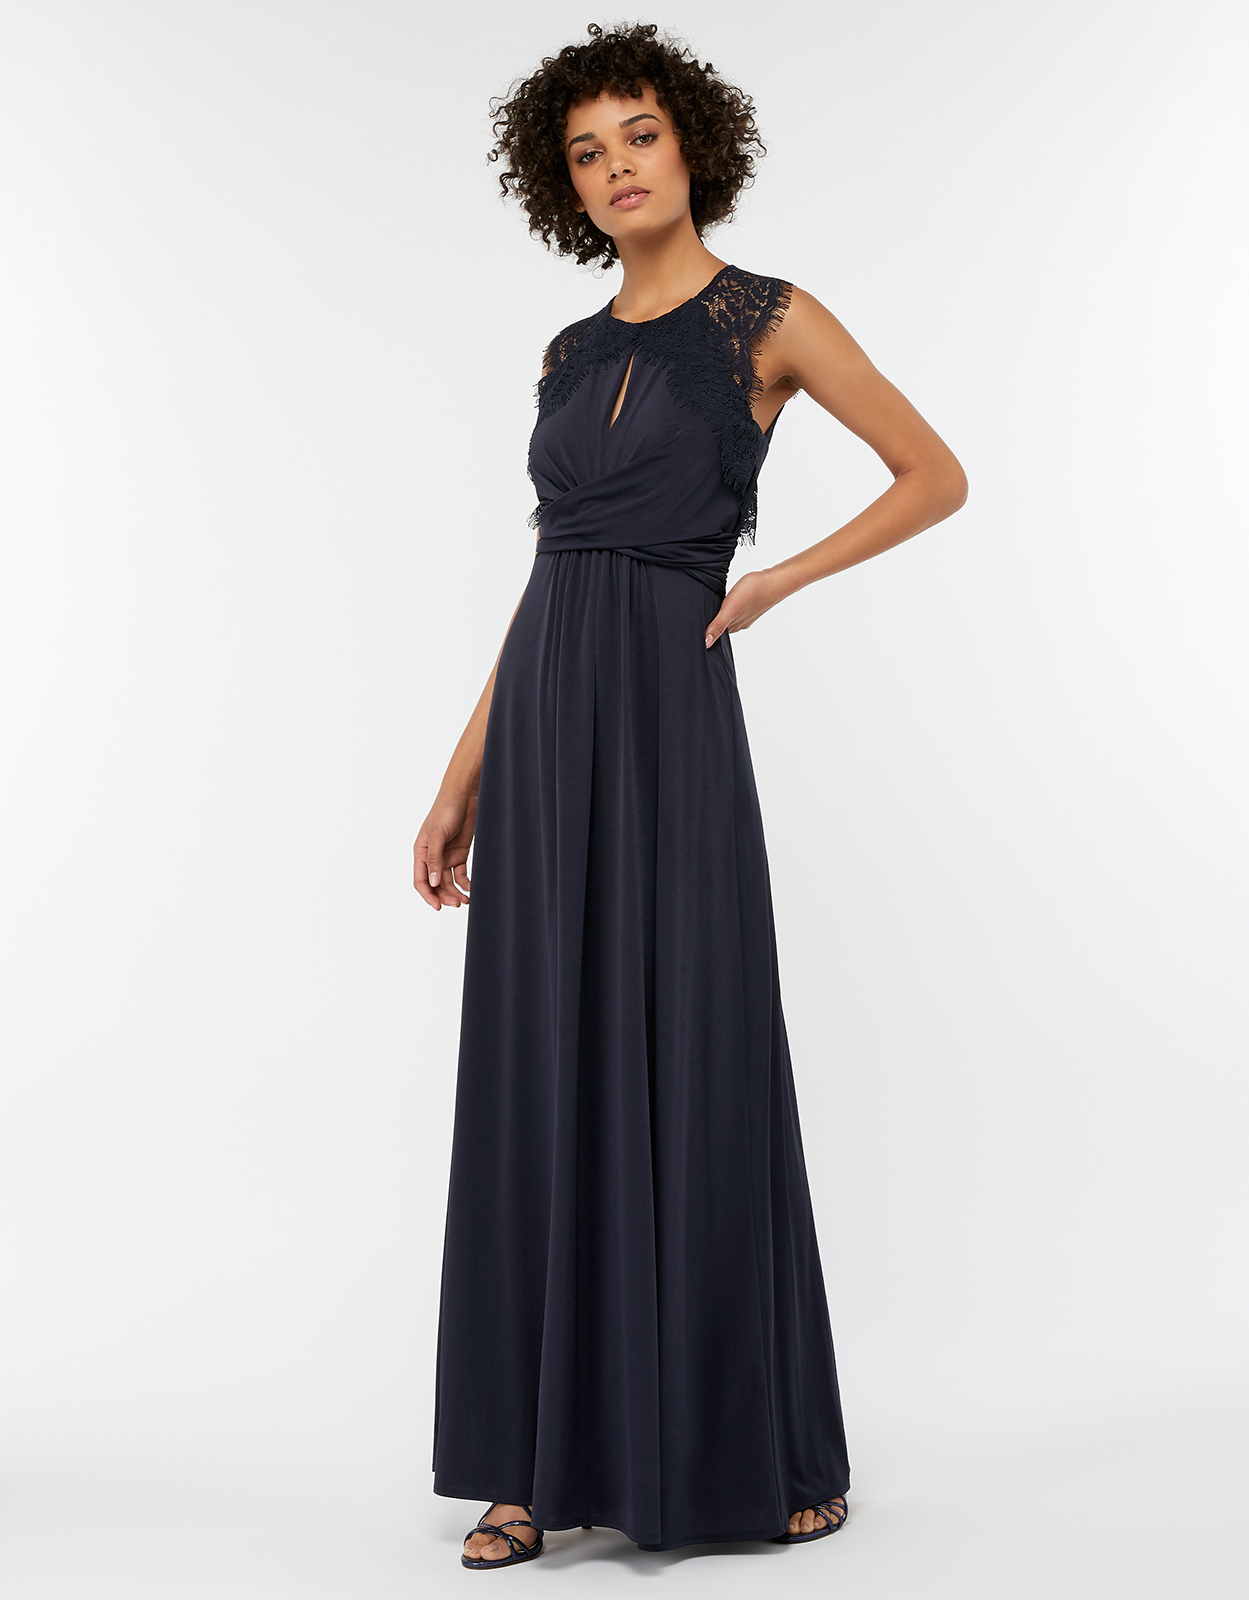 Monsoon Yasmeen Lace Jersey Maxi Bridesmaid Dress